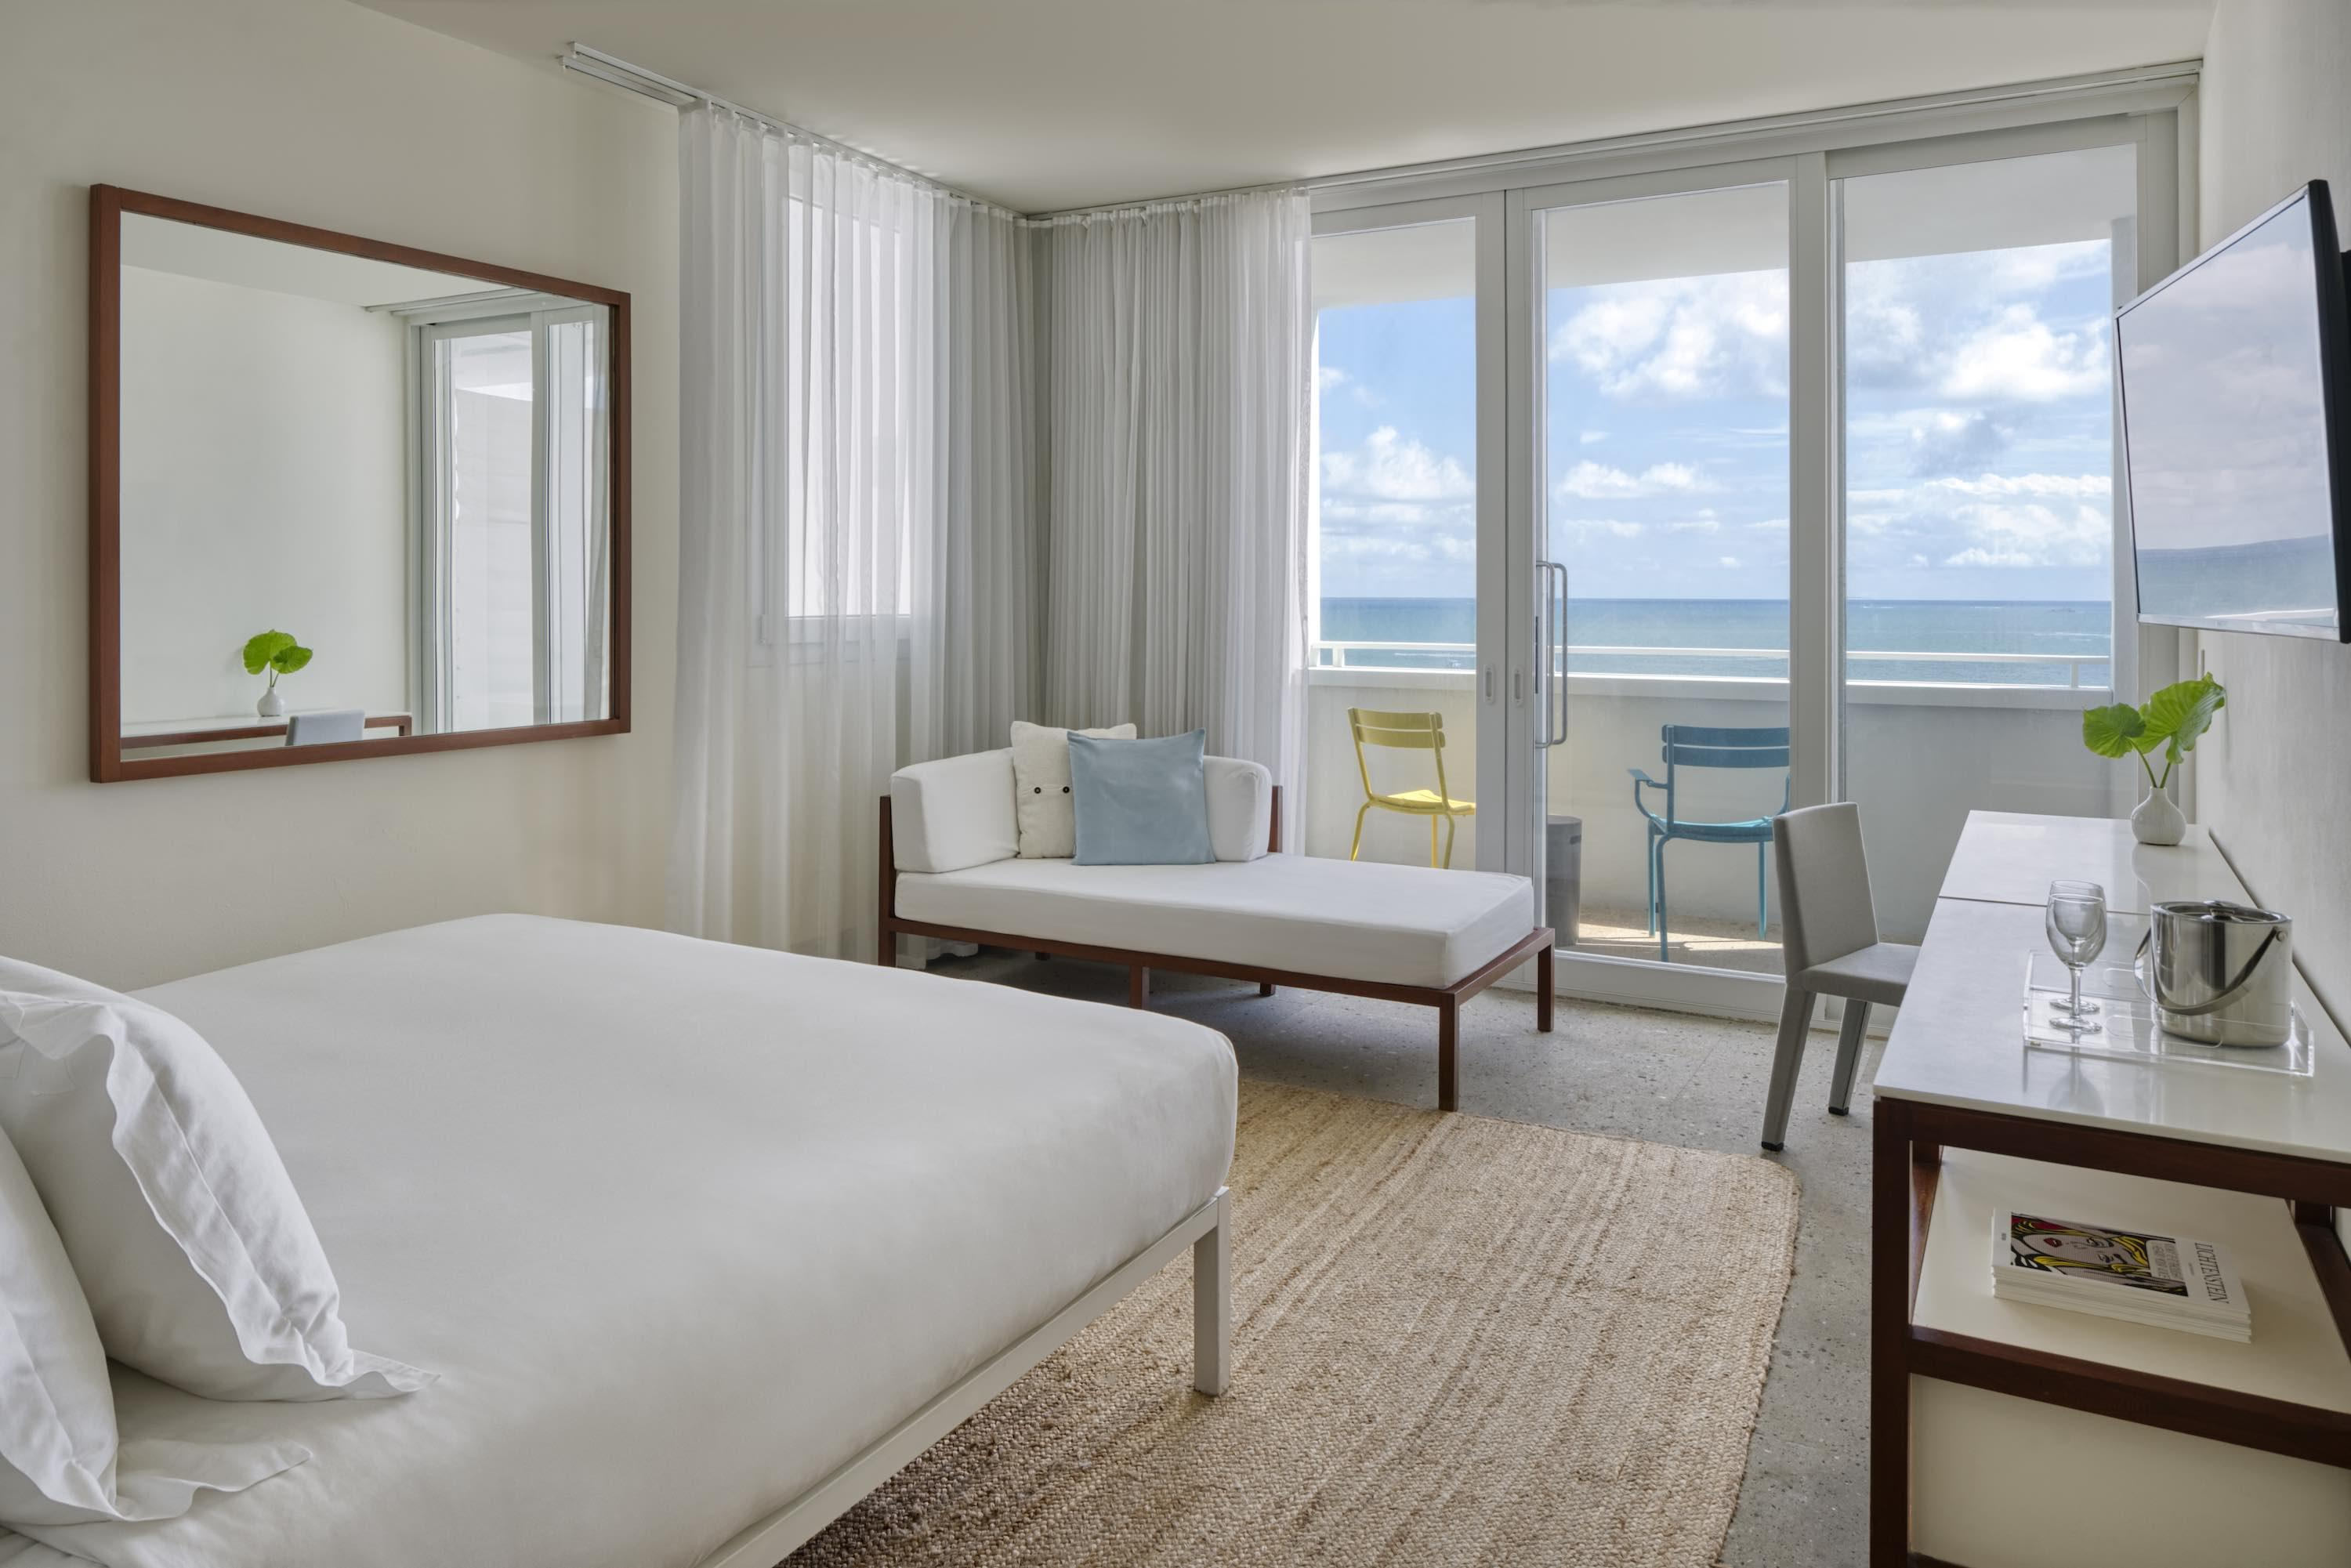 white hotel room with bed and sitting area in front of large windows